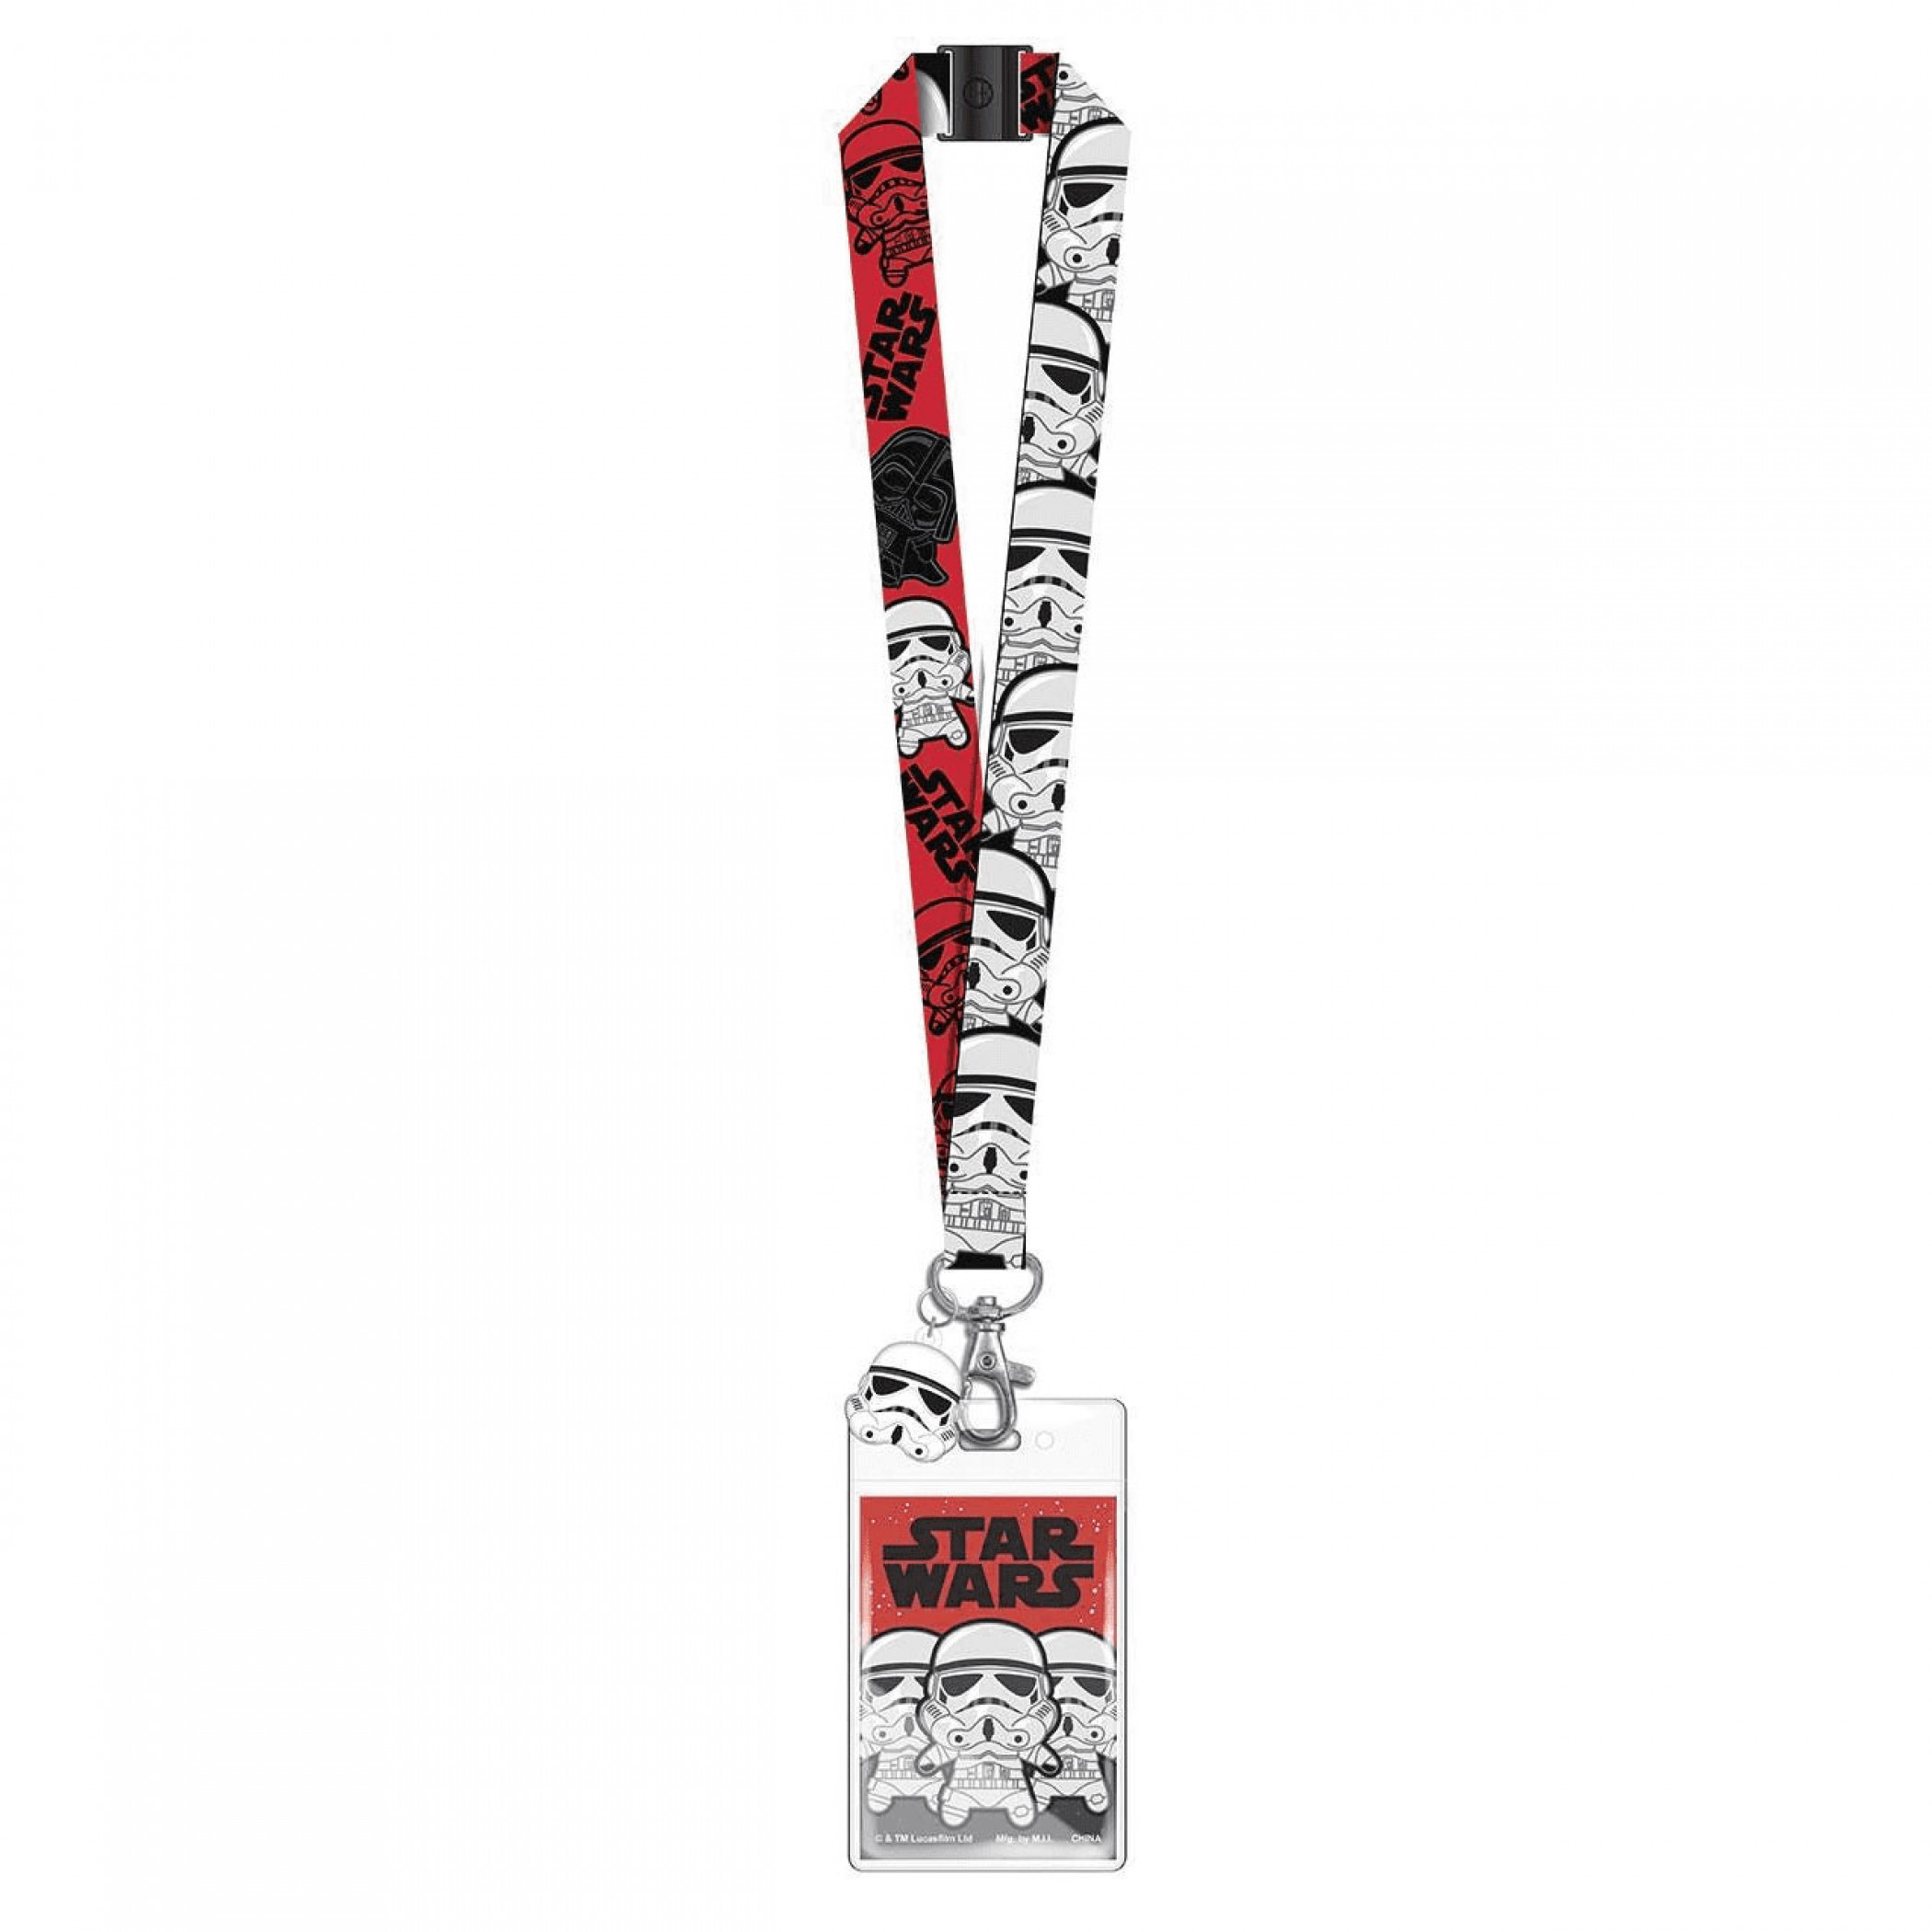 Star Wars Stormtroopers Lanyard with ID Badge Holder